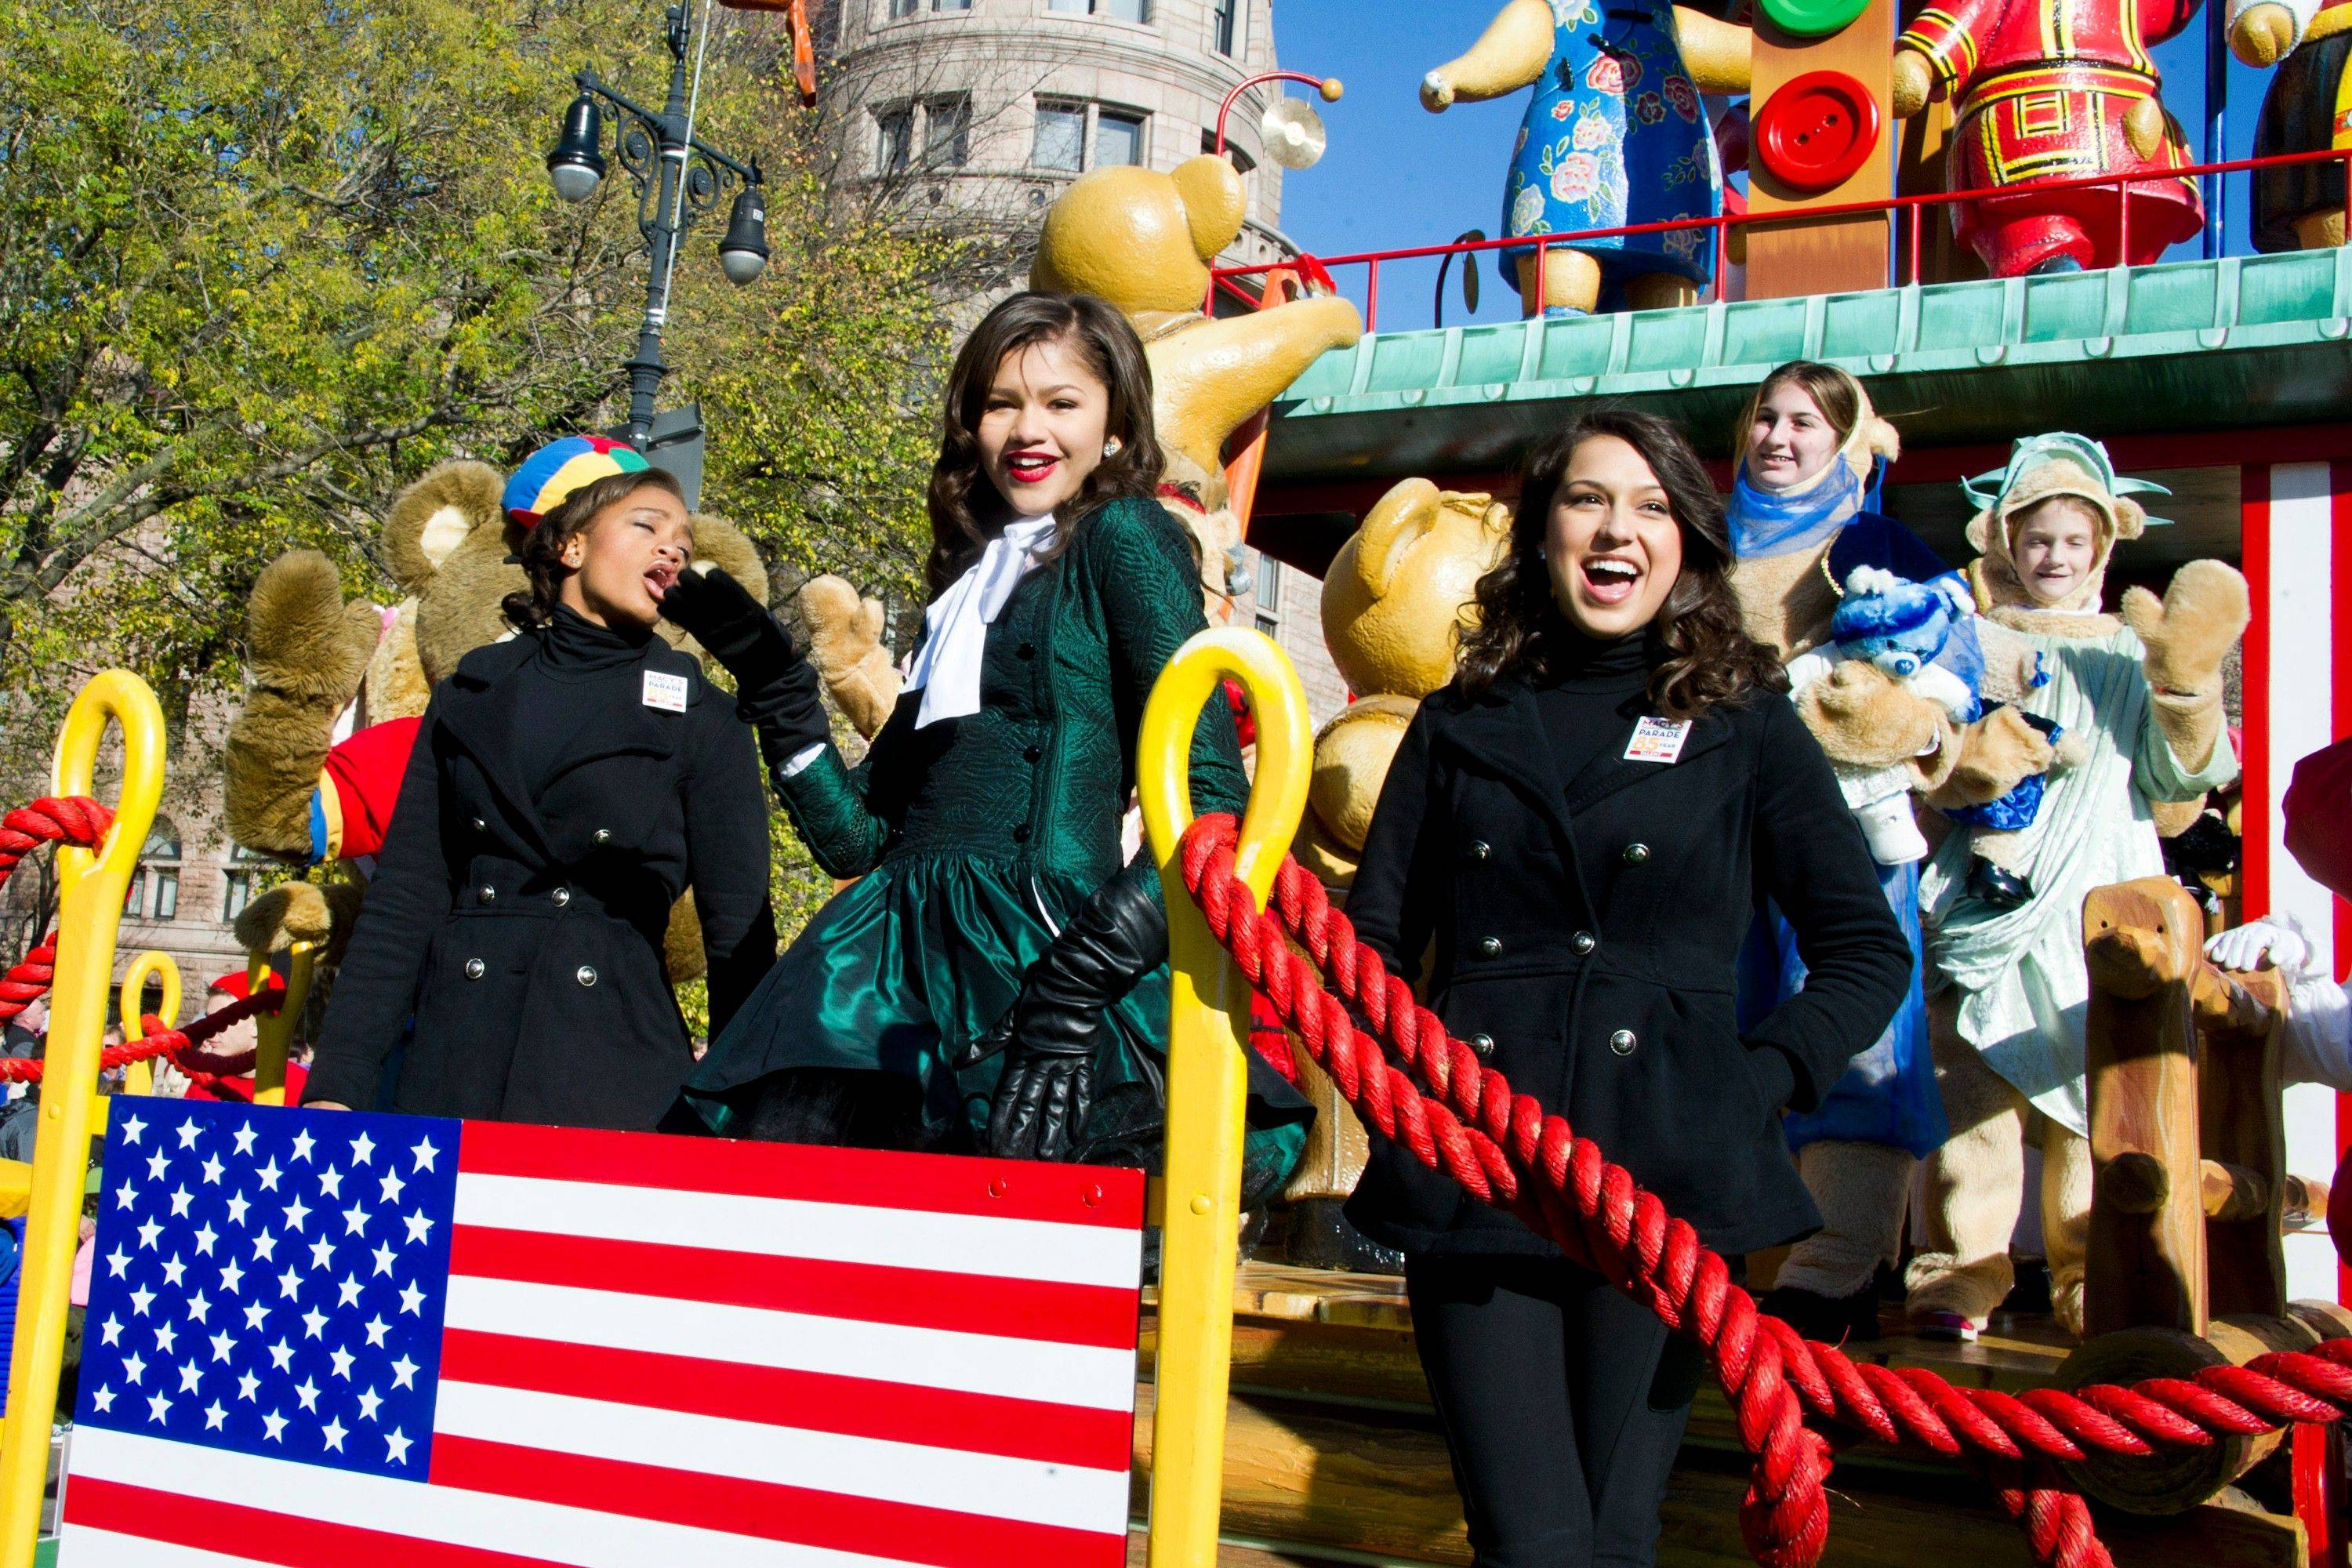 Zendaya Coleman rides a float in the Macy's Thanksgiving Day Parade in New York, Thursday, Nov. 24, 2011. A jetpack-wearing monkey and a freakish creation from filmmaker Tim Burton are two of the big new balloons that will make their inaugural appearances in front of millions of people at this year's parade.